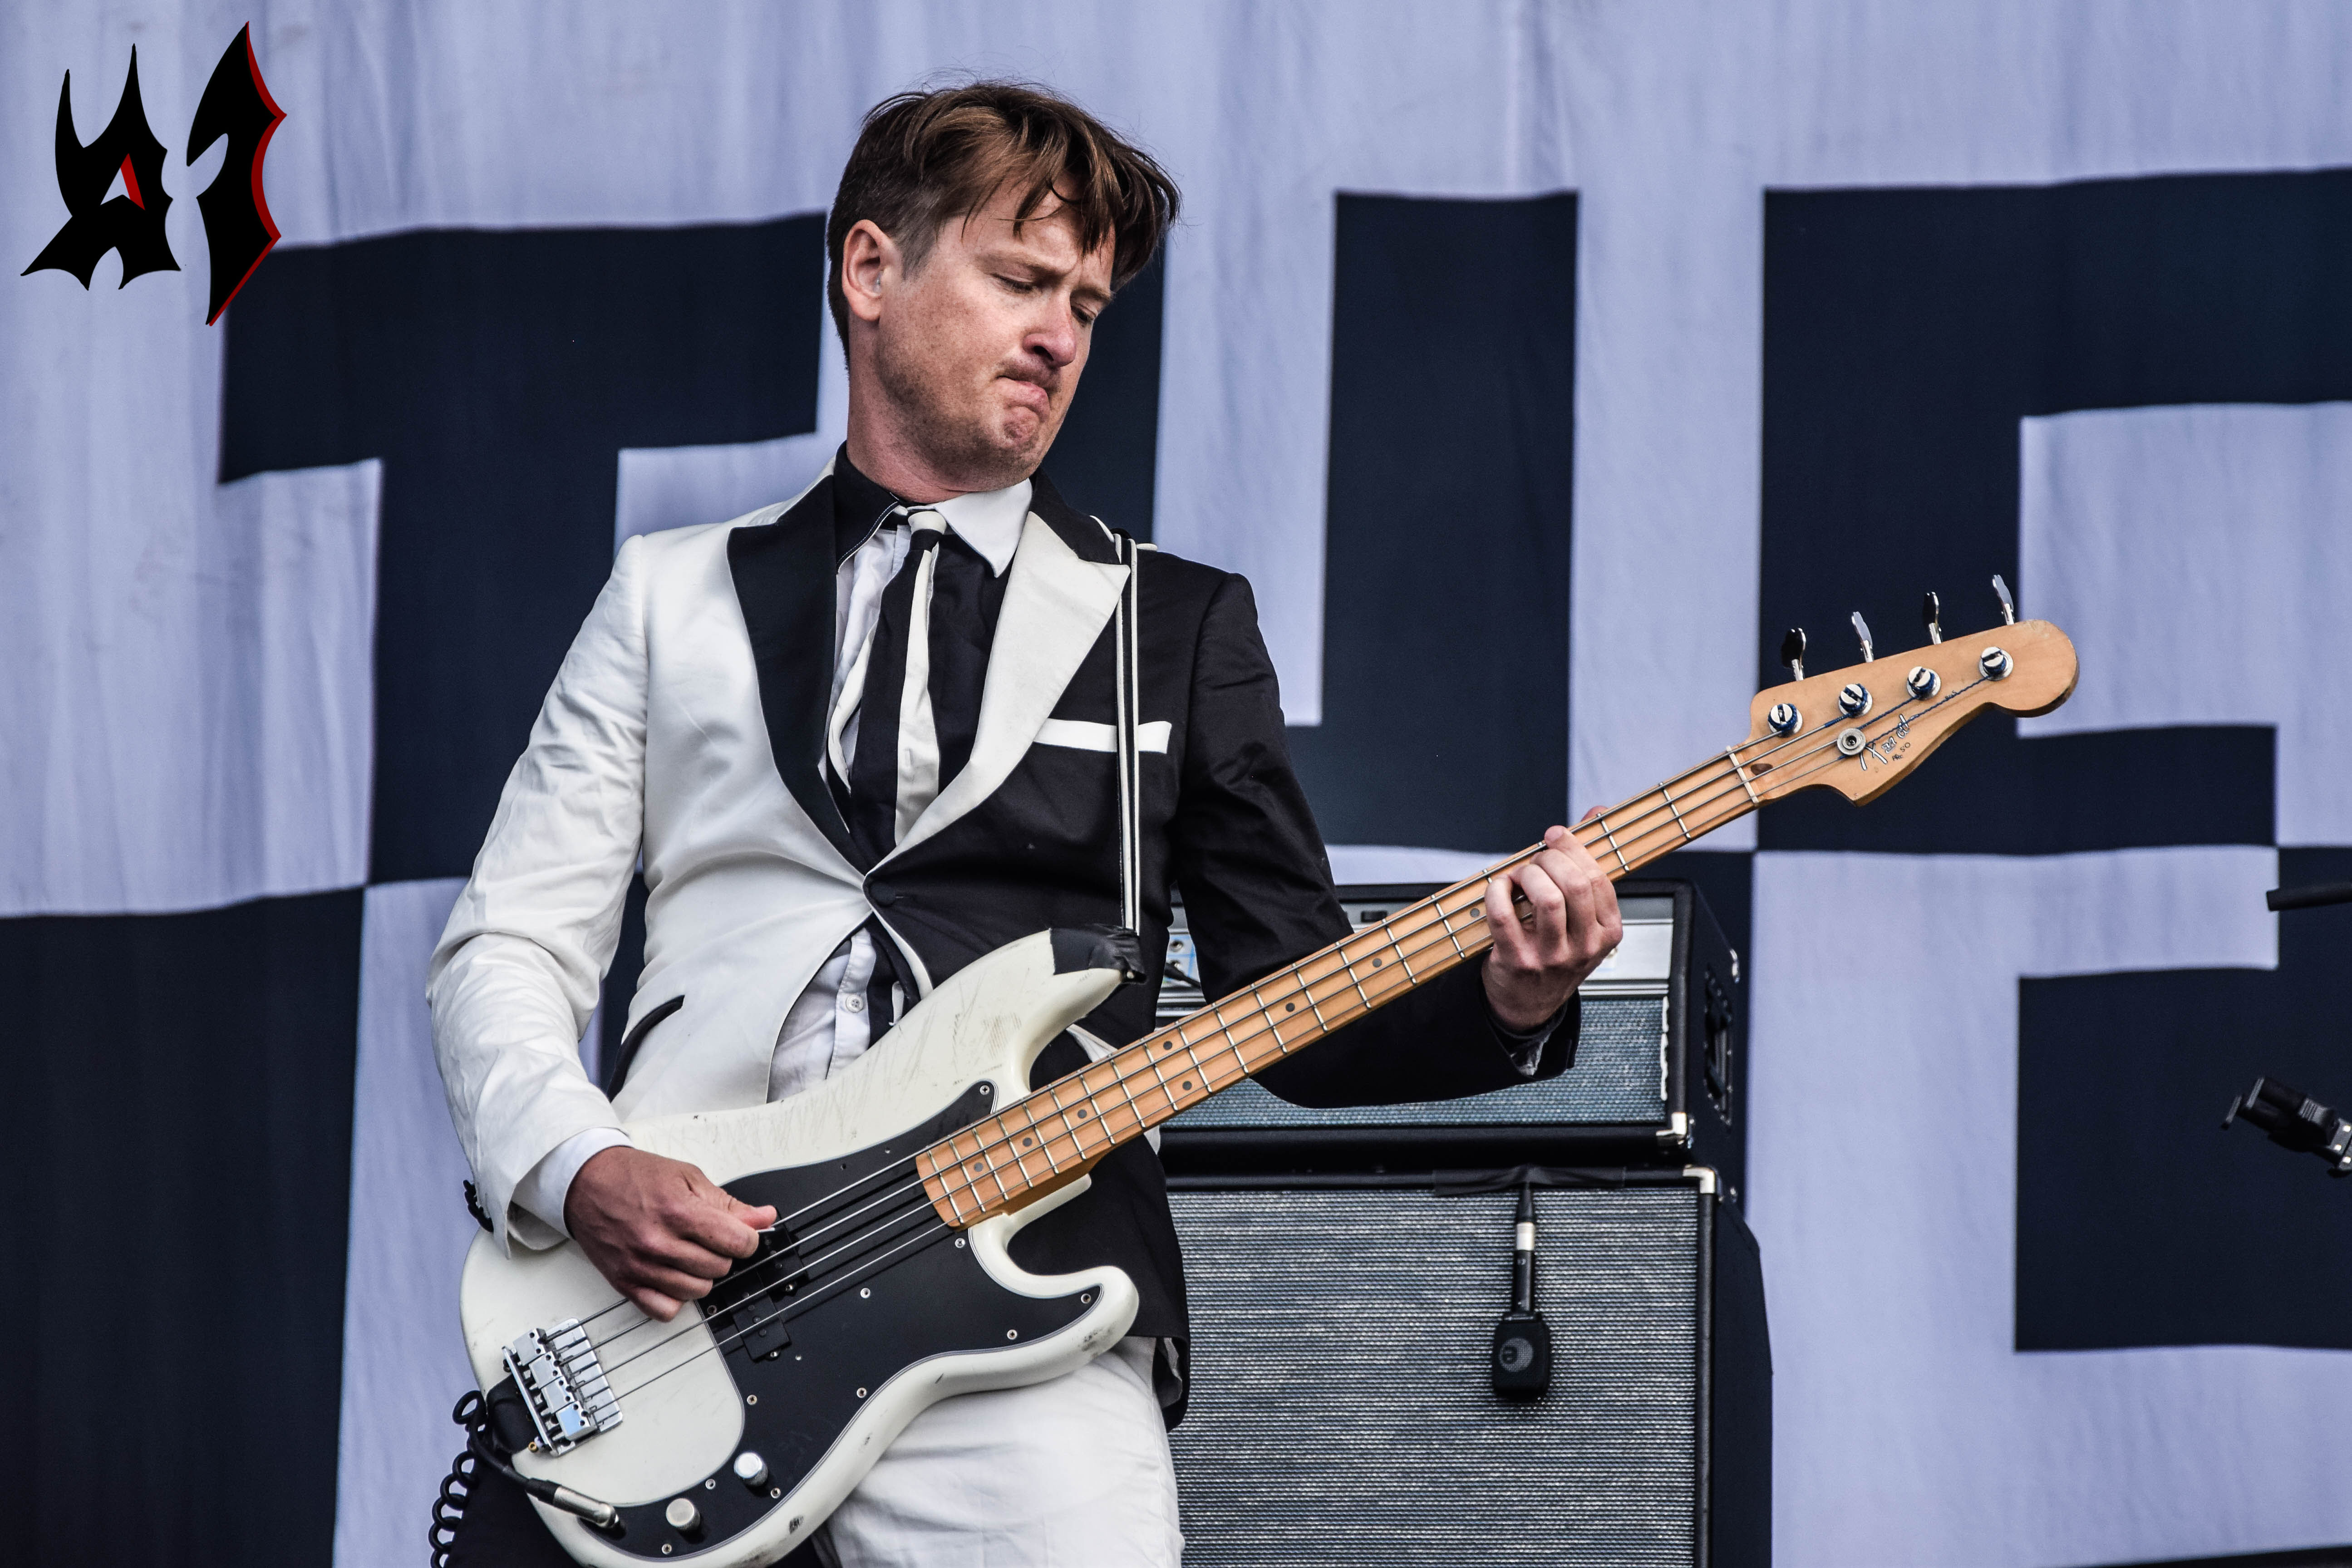 Donwload 2018 – Day 3 - The Hives 13